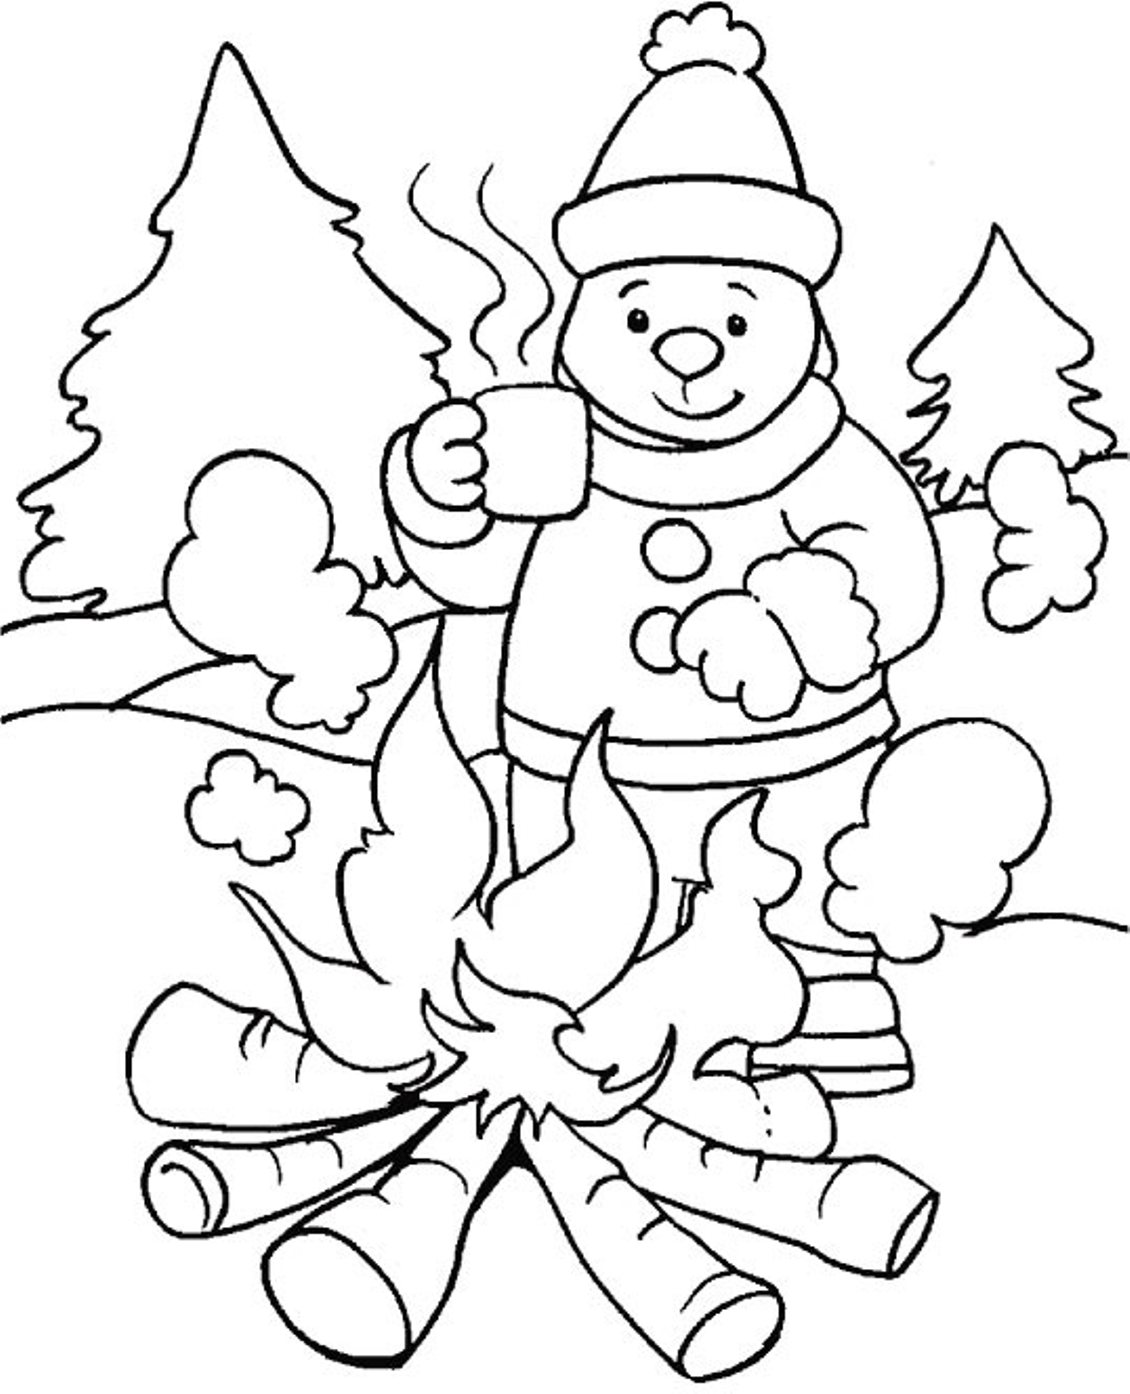 1130x1394 winter coloring printables winter coloring pages winter pond